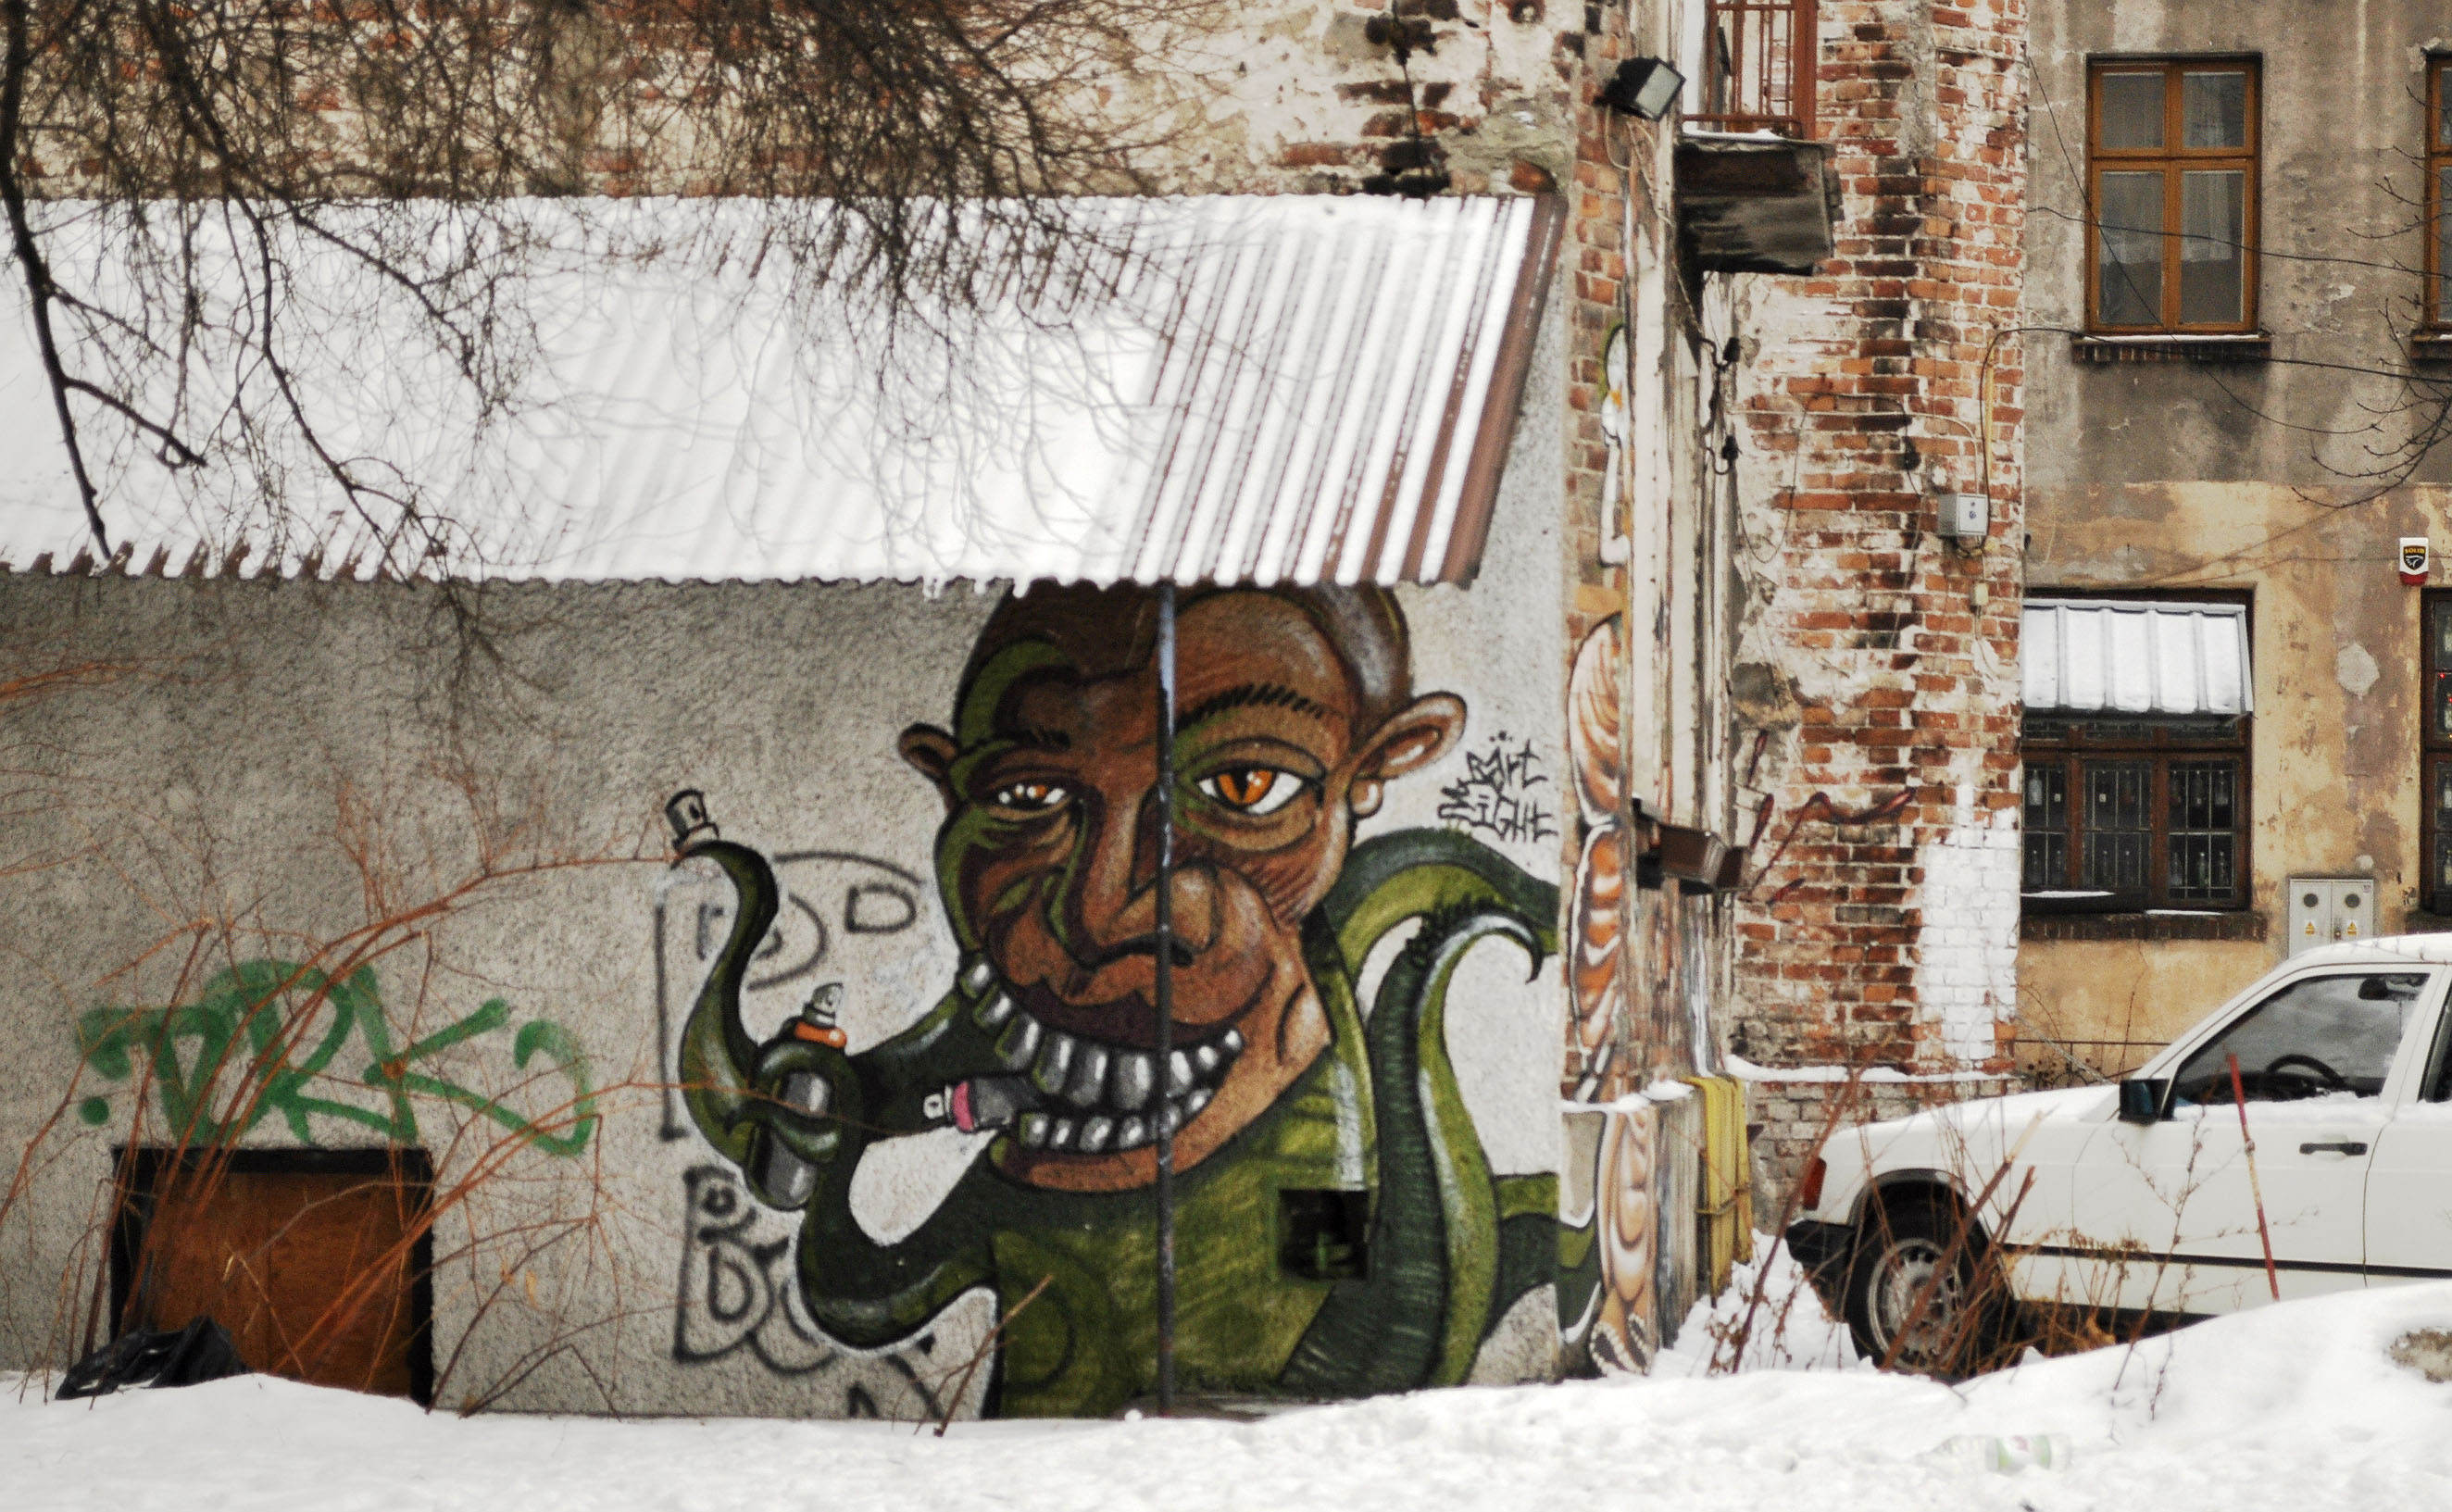 warsaw_grafitti-caterpillar-man